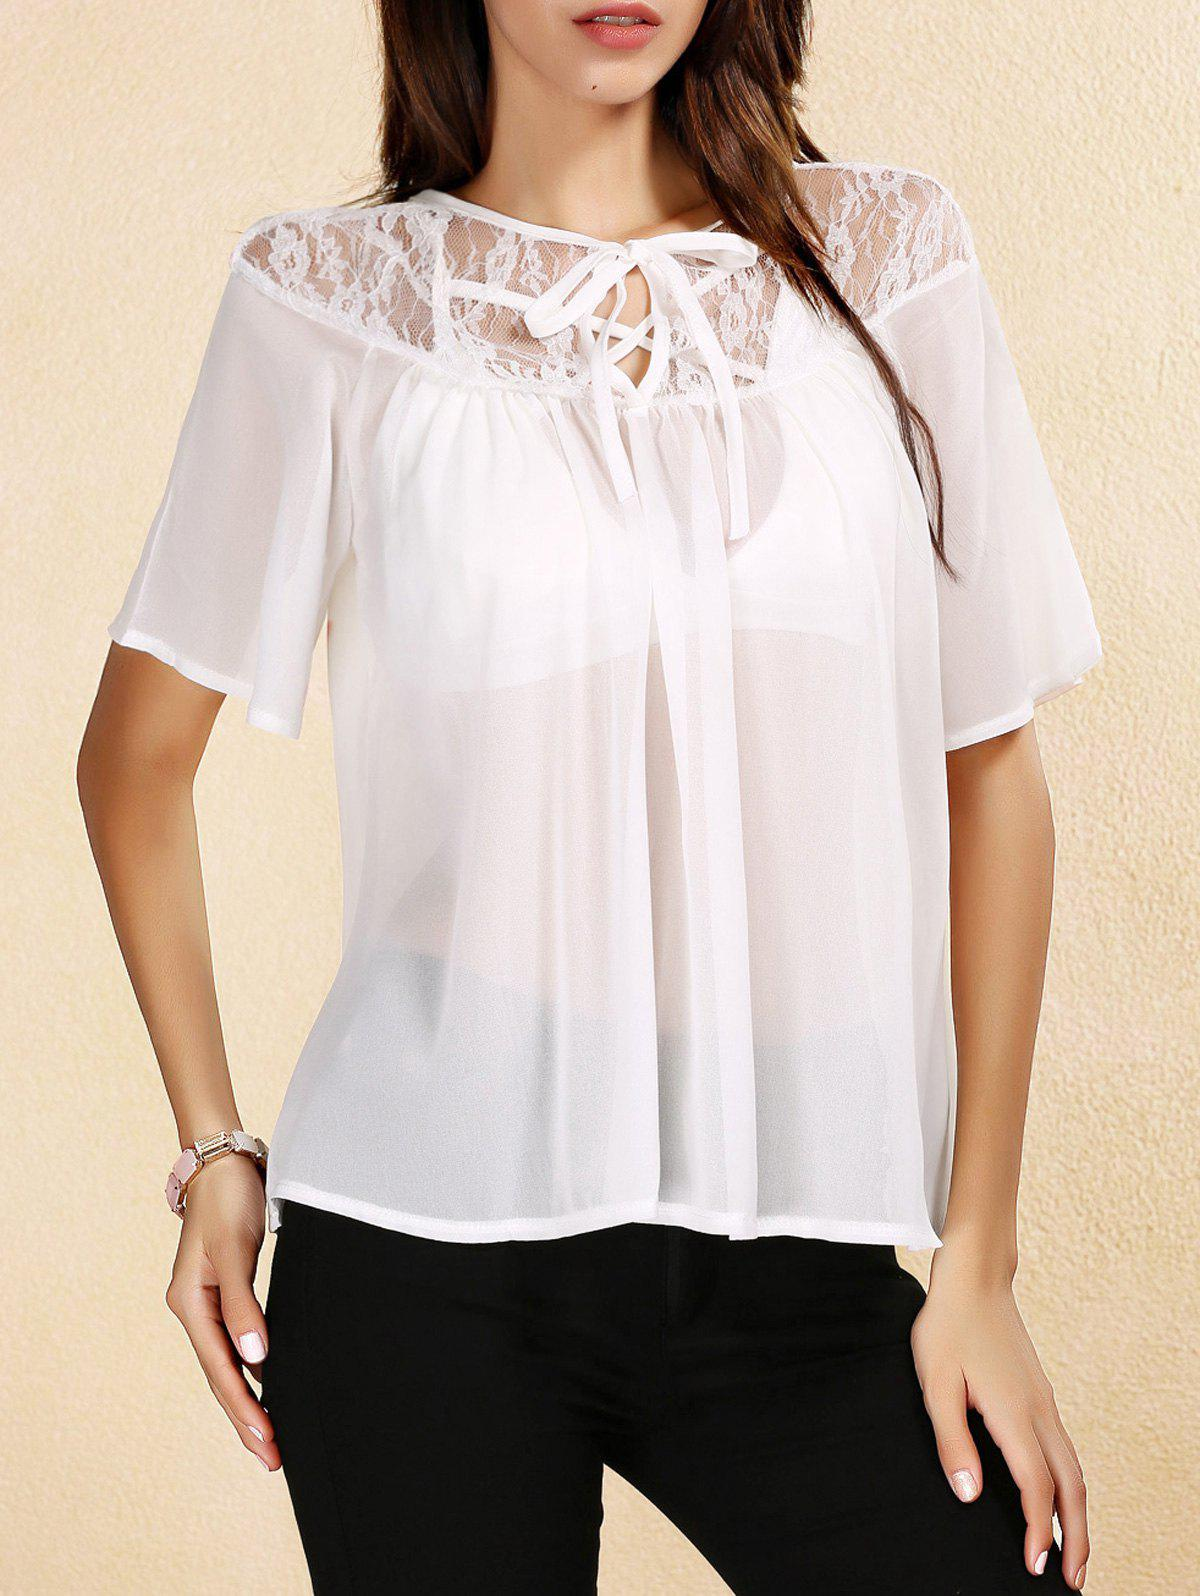 Sweet Women's Keyhole Neck Short Sleeves Lace Up Chiffon Blouse - WHITE XL